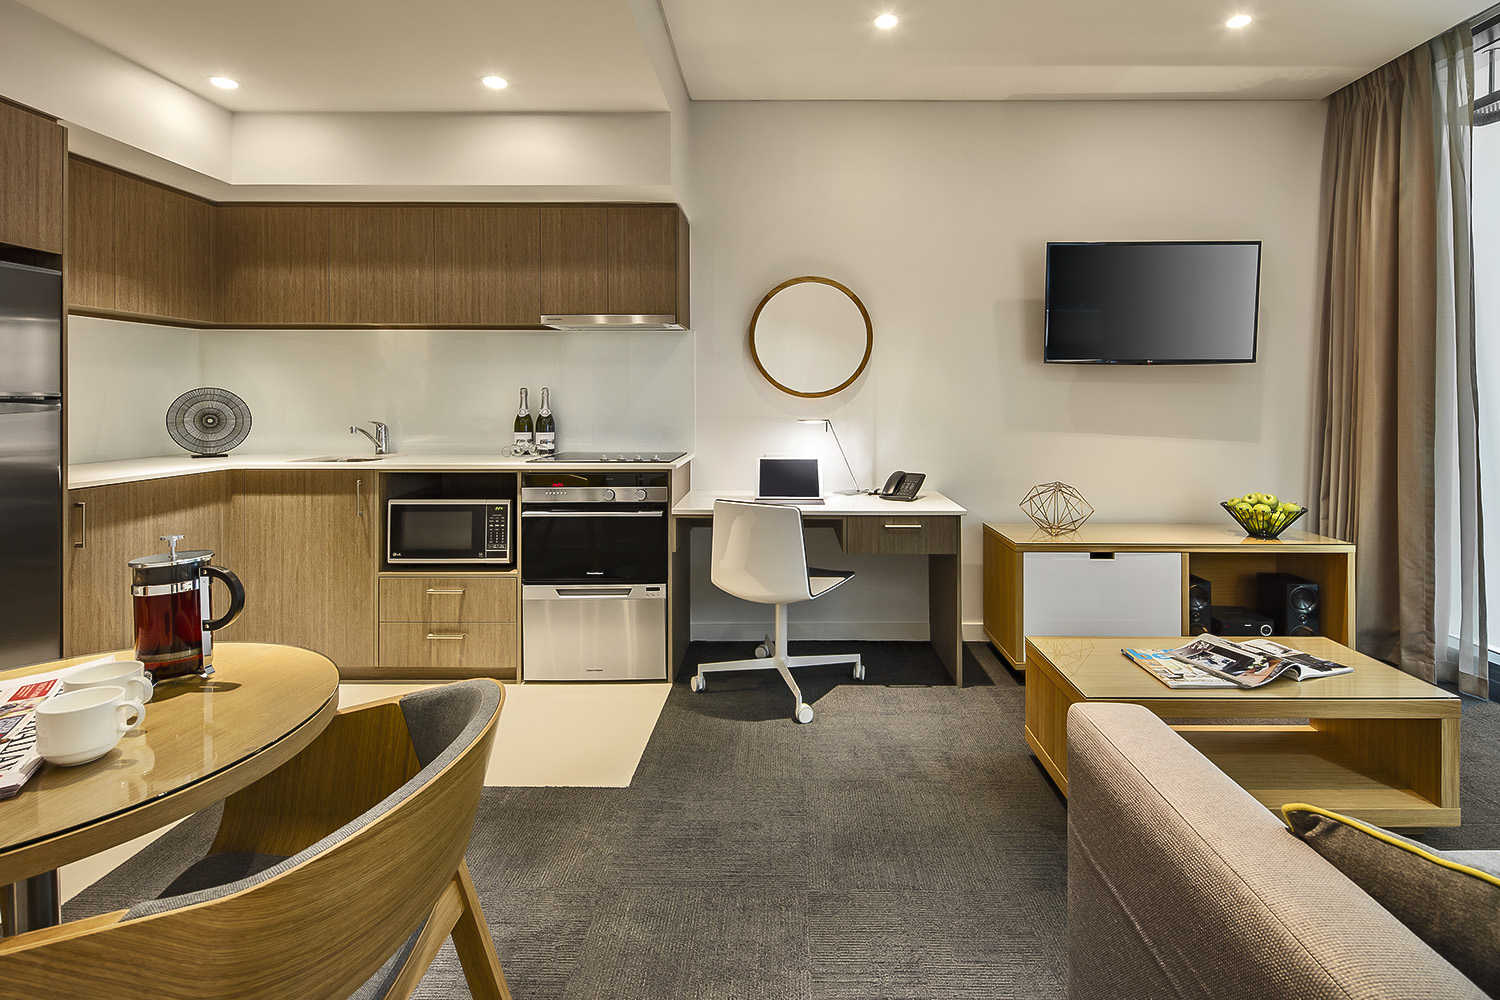 Quest Mounts Bay Road- One bedroom apartment - PERTH, Western Australia - 27th Australian Conference on Microscopy and Microanalysis